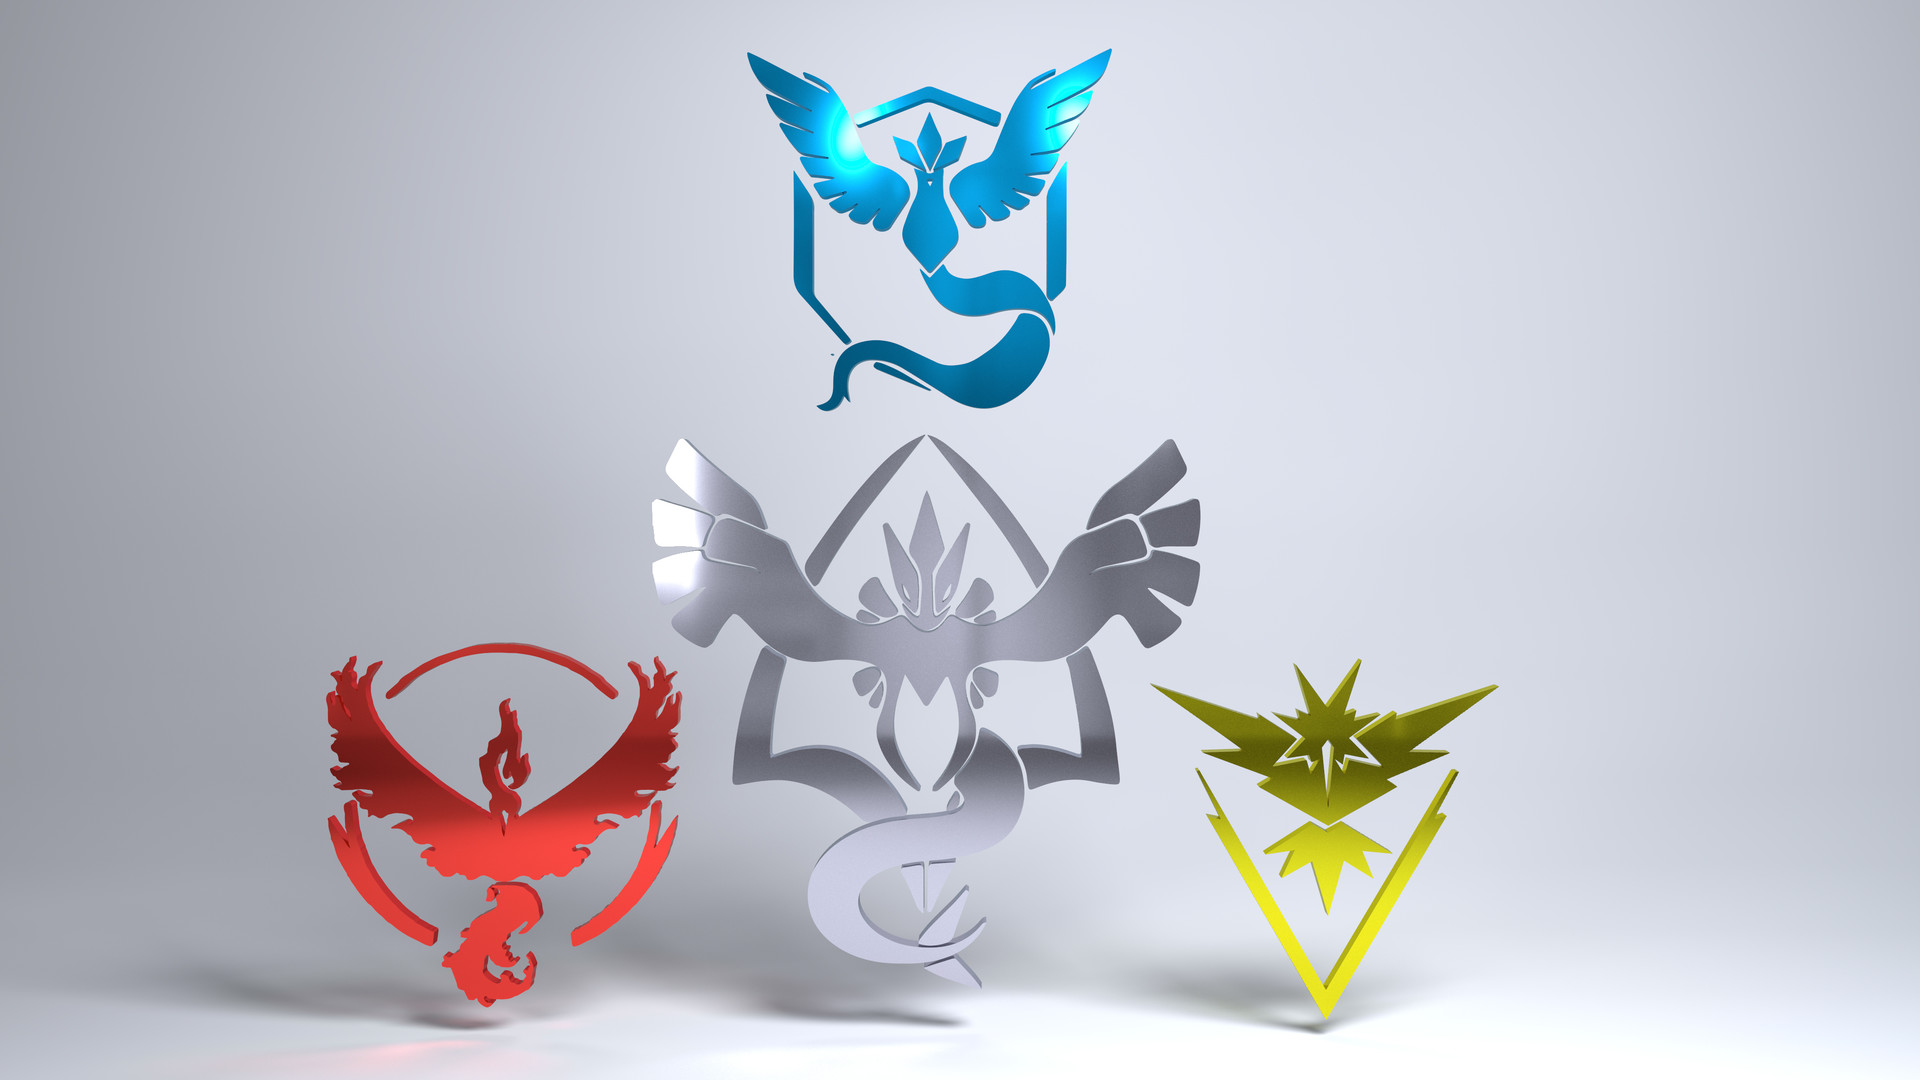 Pokemon Go Team Symbols Images